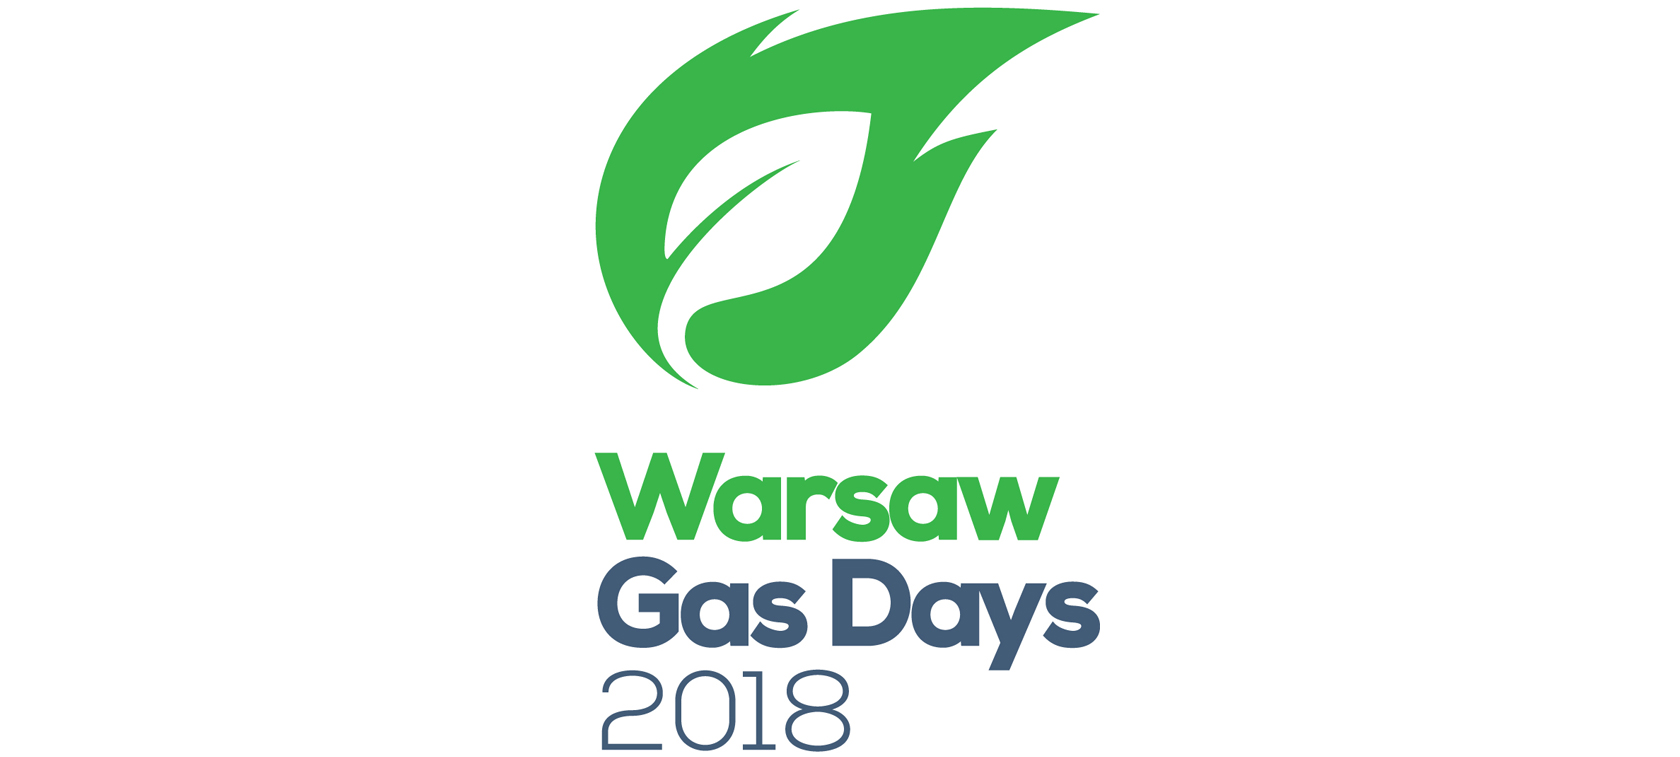 Goodbye GasShow, welcome Warsaw Gas Days!